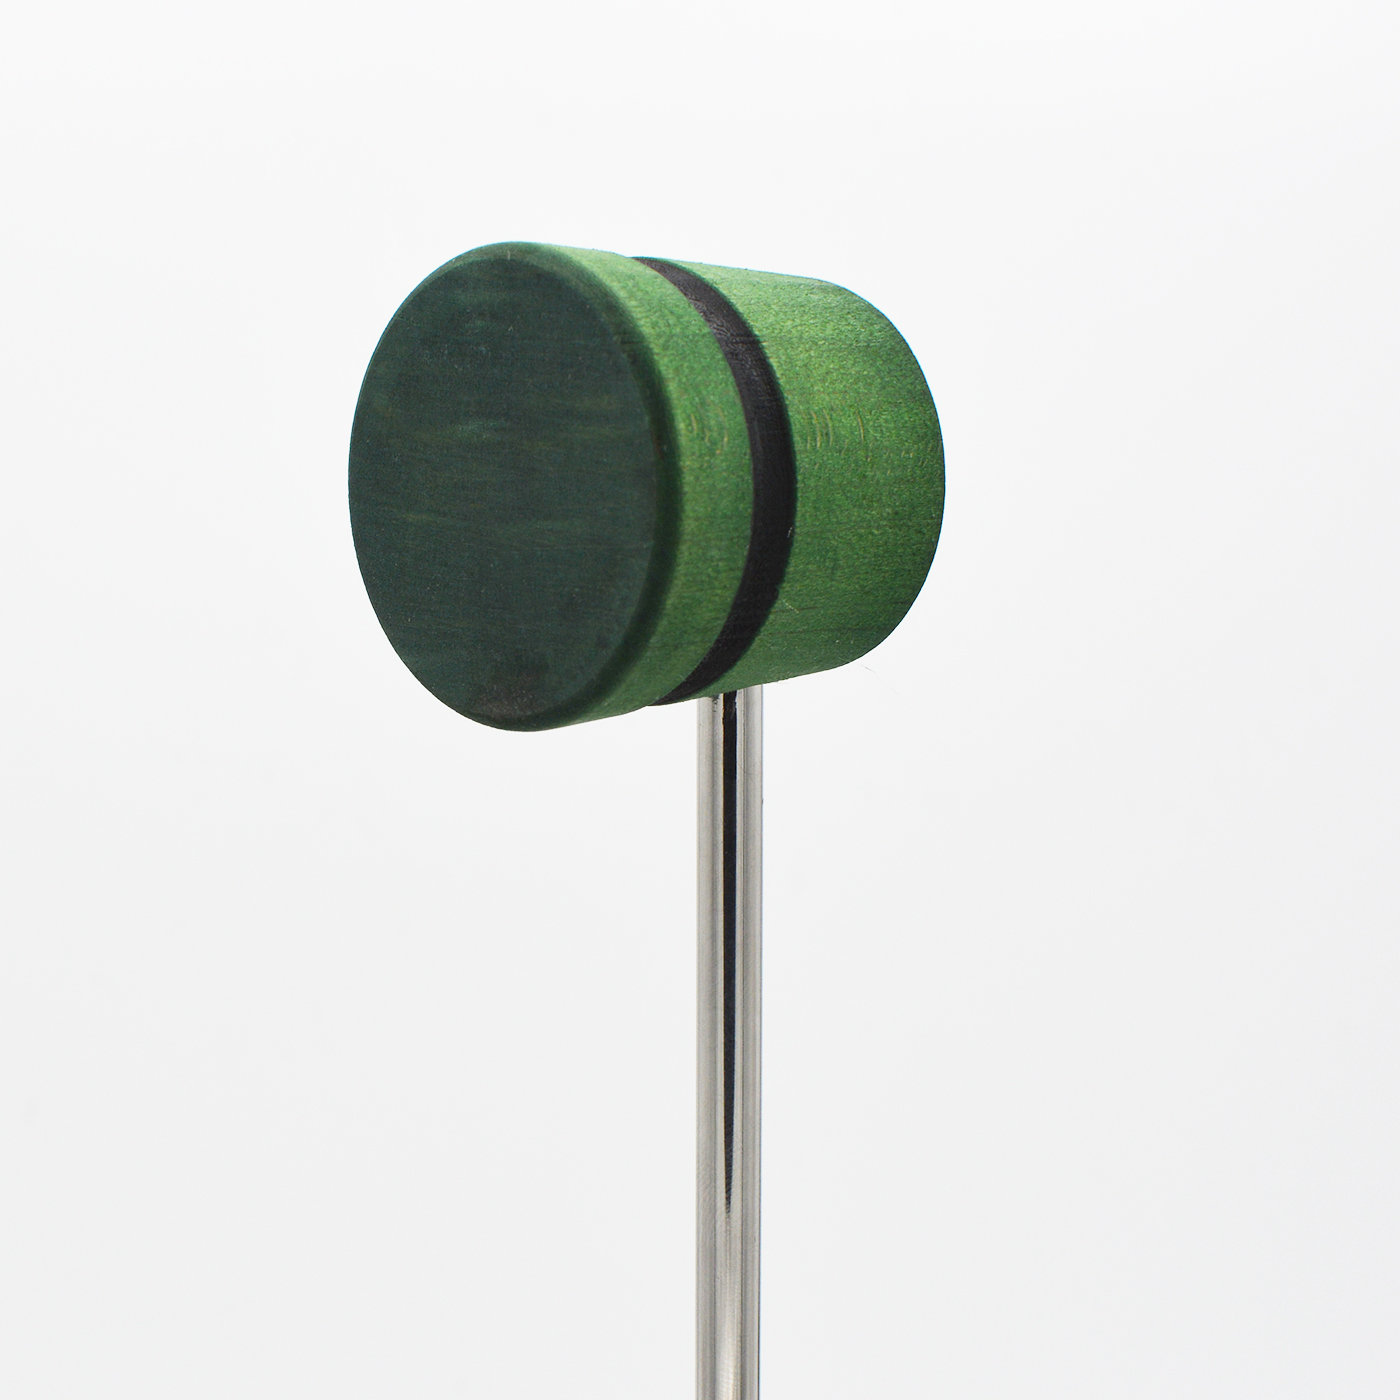 Lightweight, Green with Black Stripe